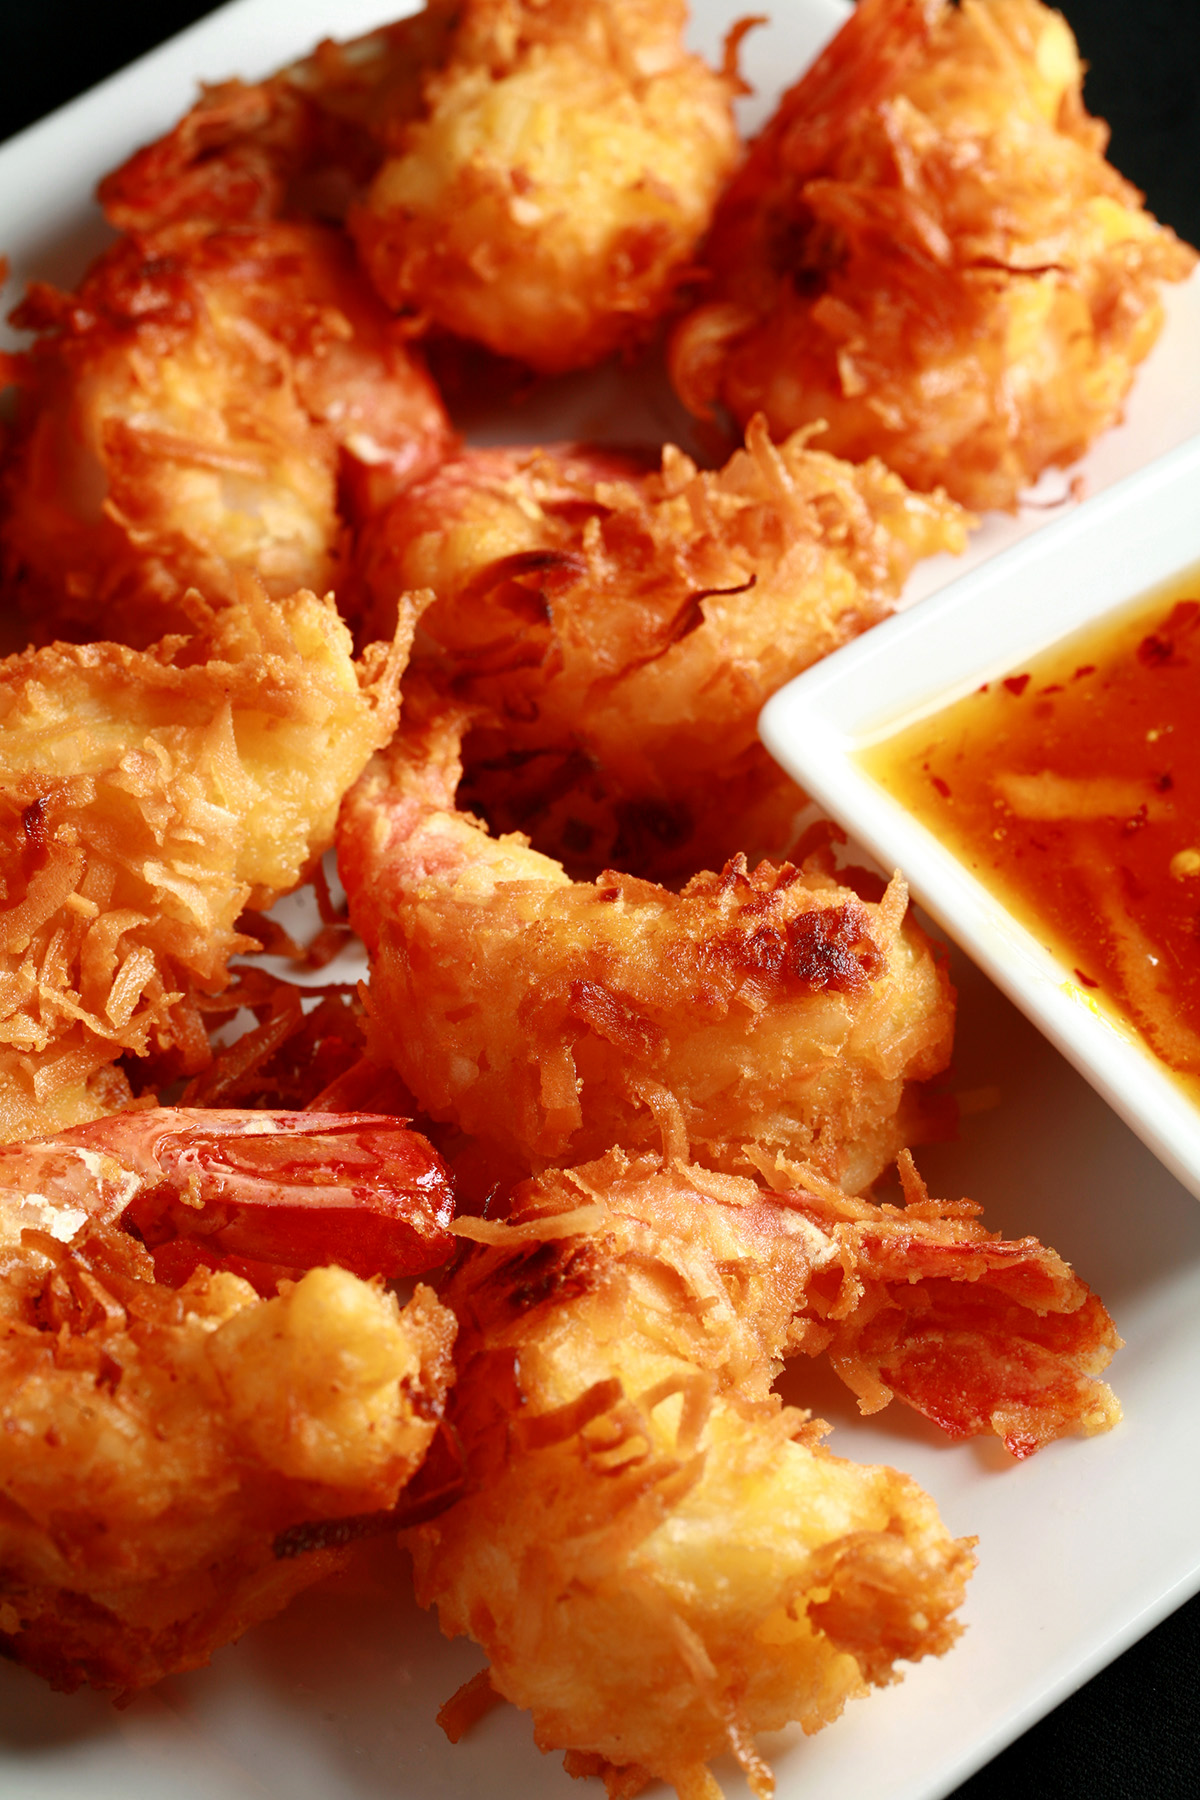 A white plate is covered with golden brown gluten-free coconut shrimp.  There is a small bowl of spicy ginger-orange sauce on the same plate, as a dip.